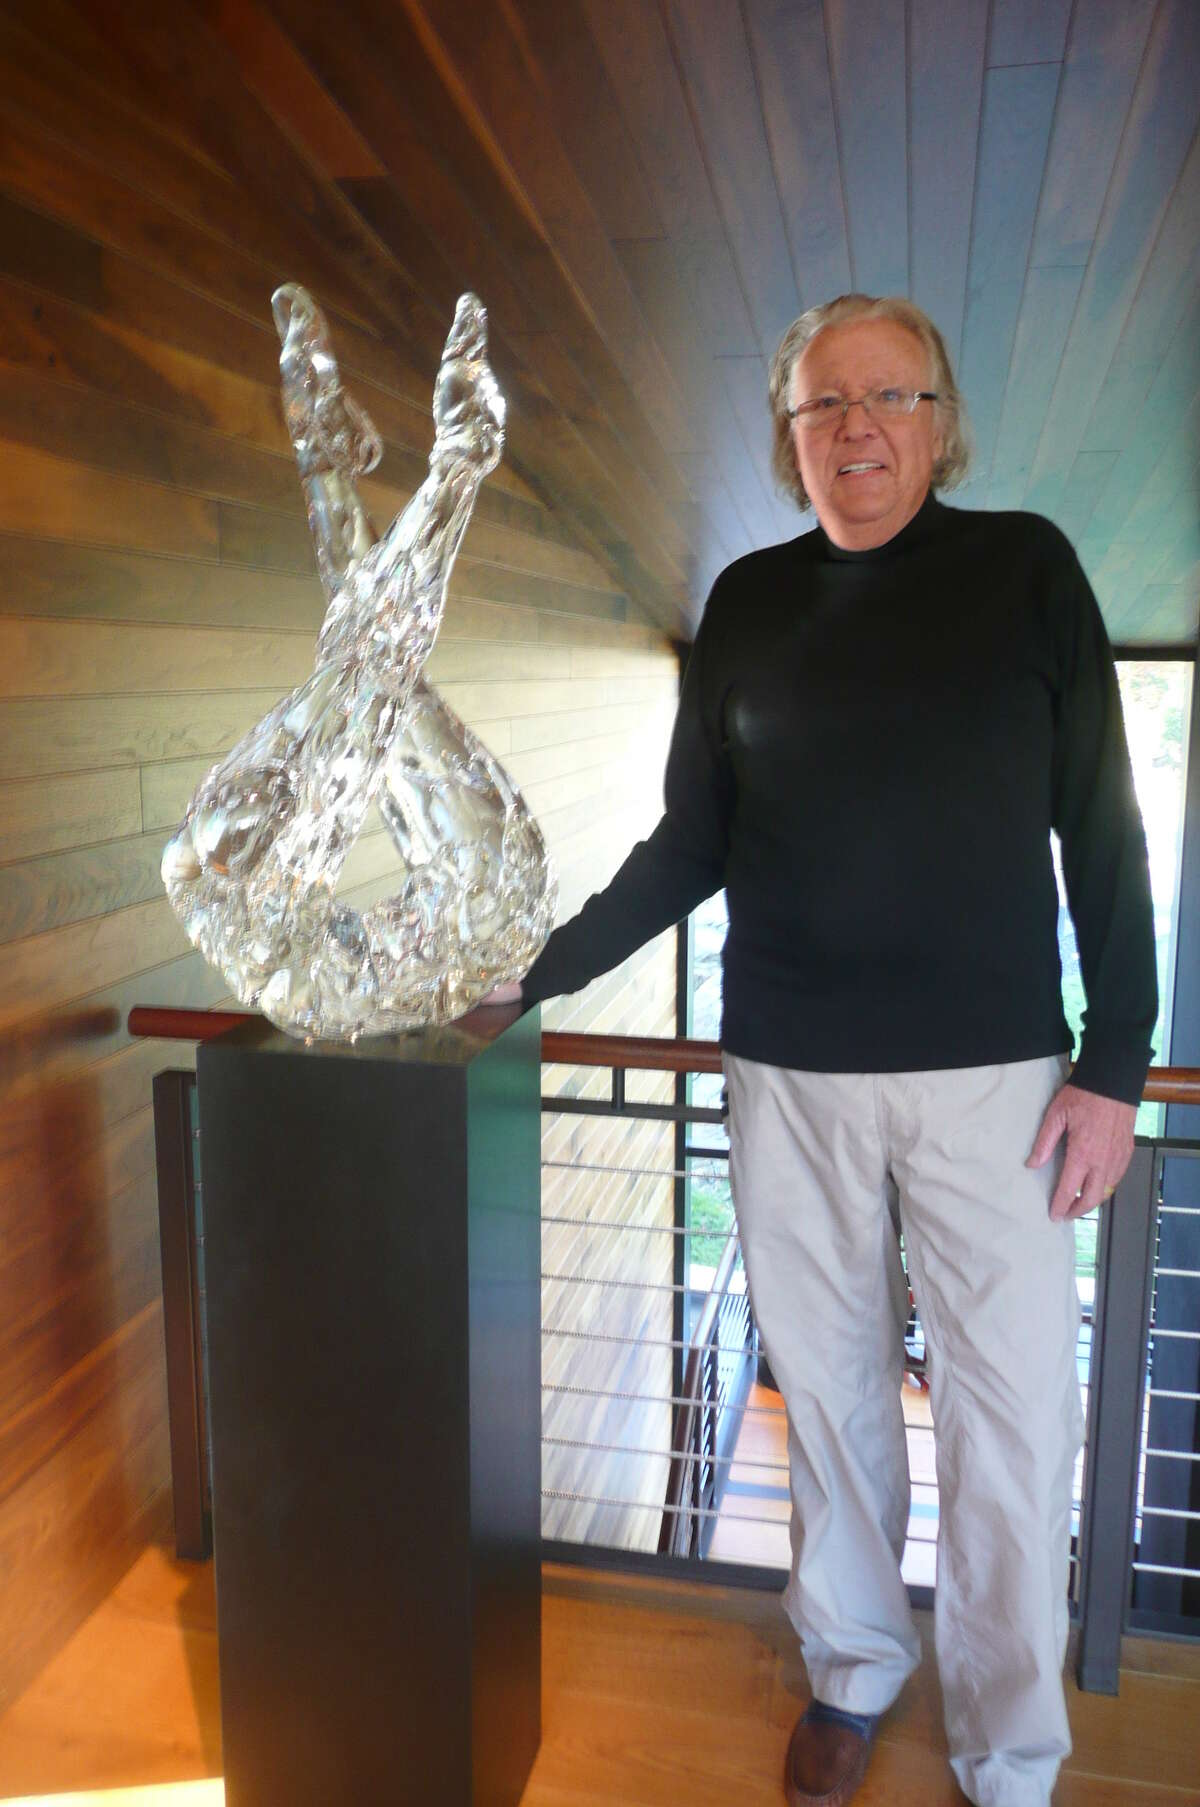 Seven Bridges Foundation founder and art collector Richard McKenzie stands next to the glass sculpture, Sentinel by Martin Blank.